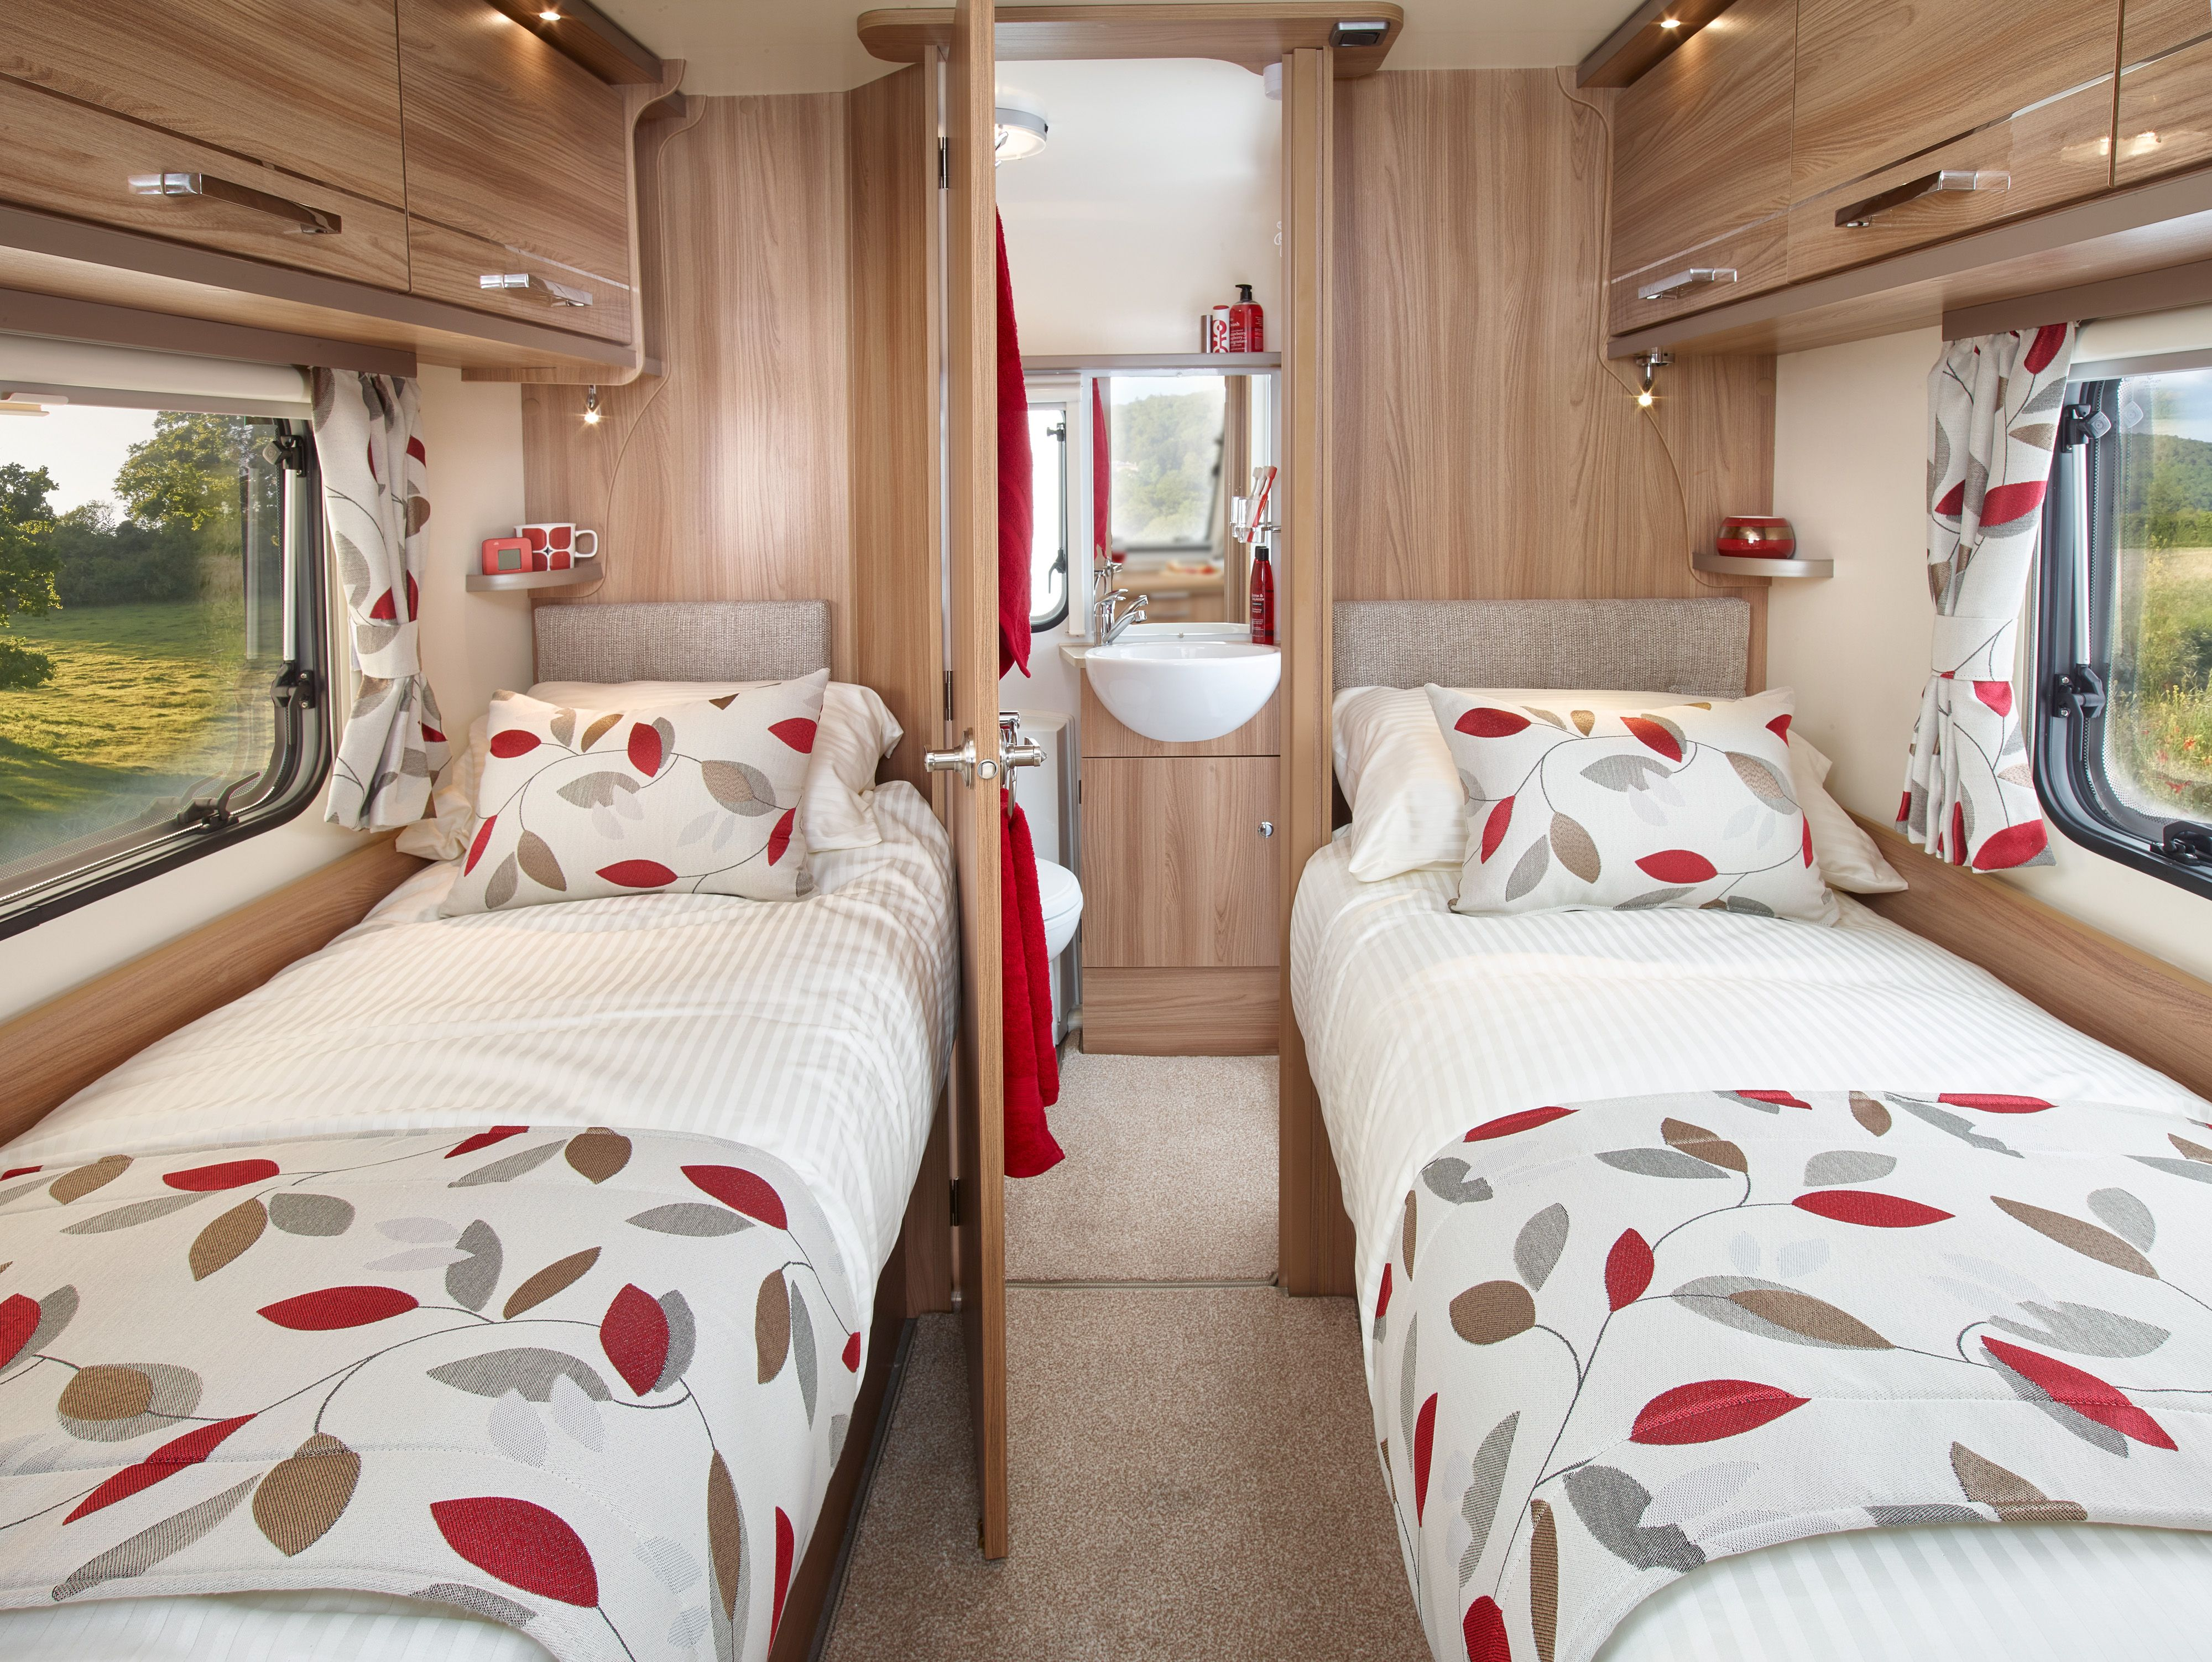 Motorhome Layout and Features